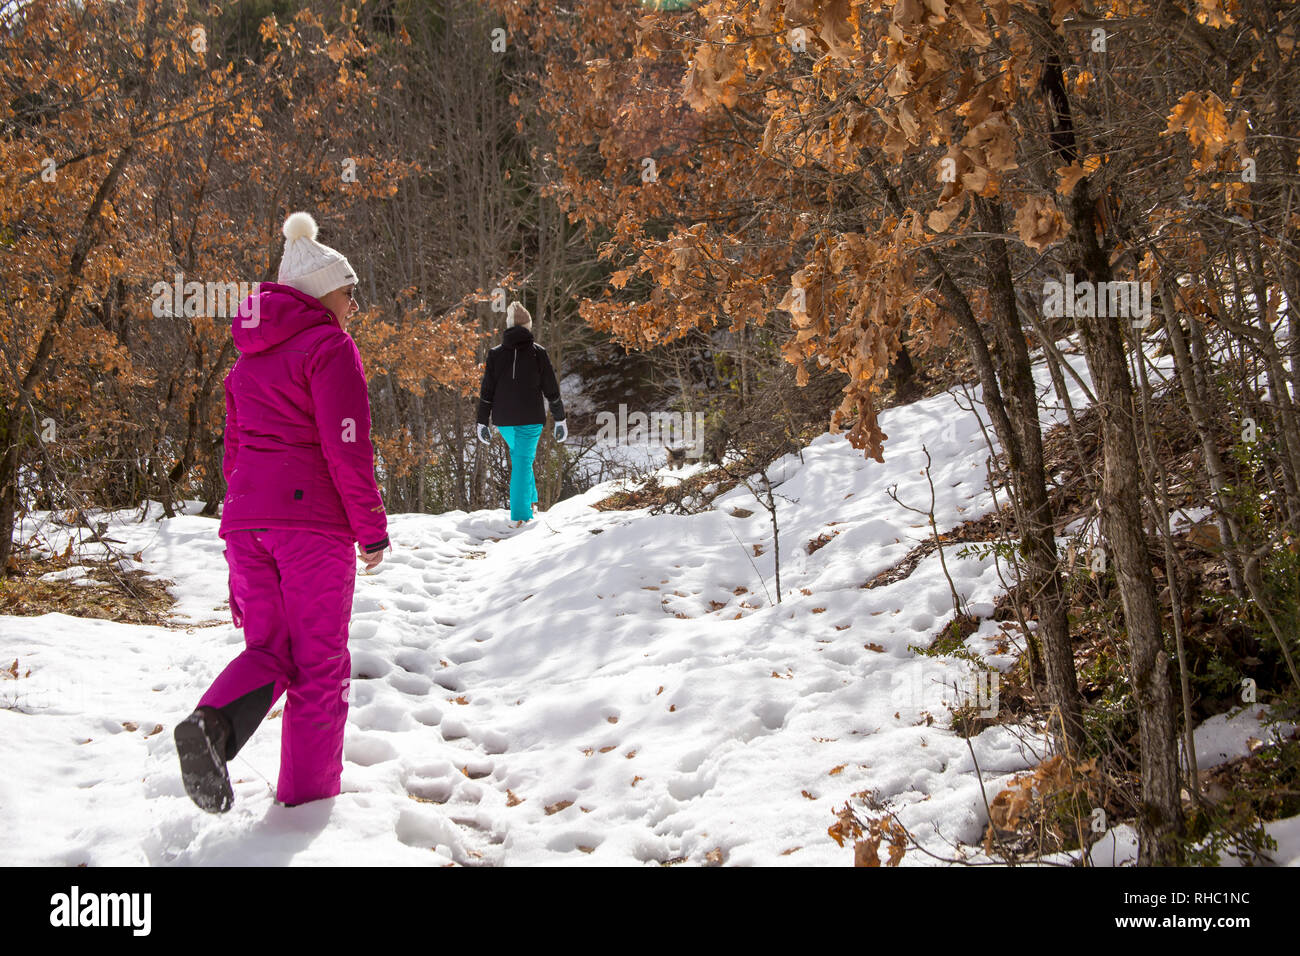 Mom and daughter, dressed in ski suits, are hiking in a snowy winter forest on a sunny day. On the branches of trees, dry yellow leaves are illuminate - Stock Image